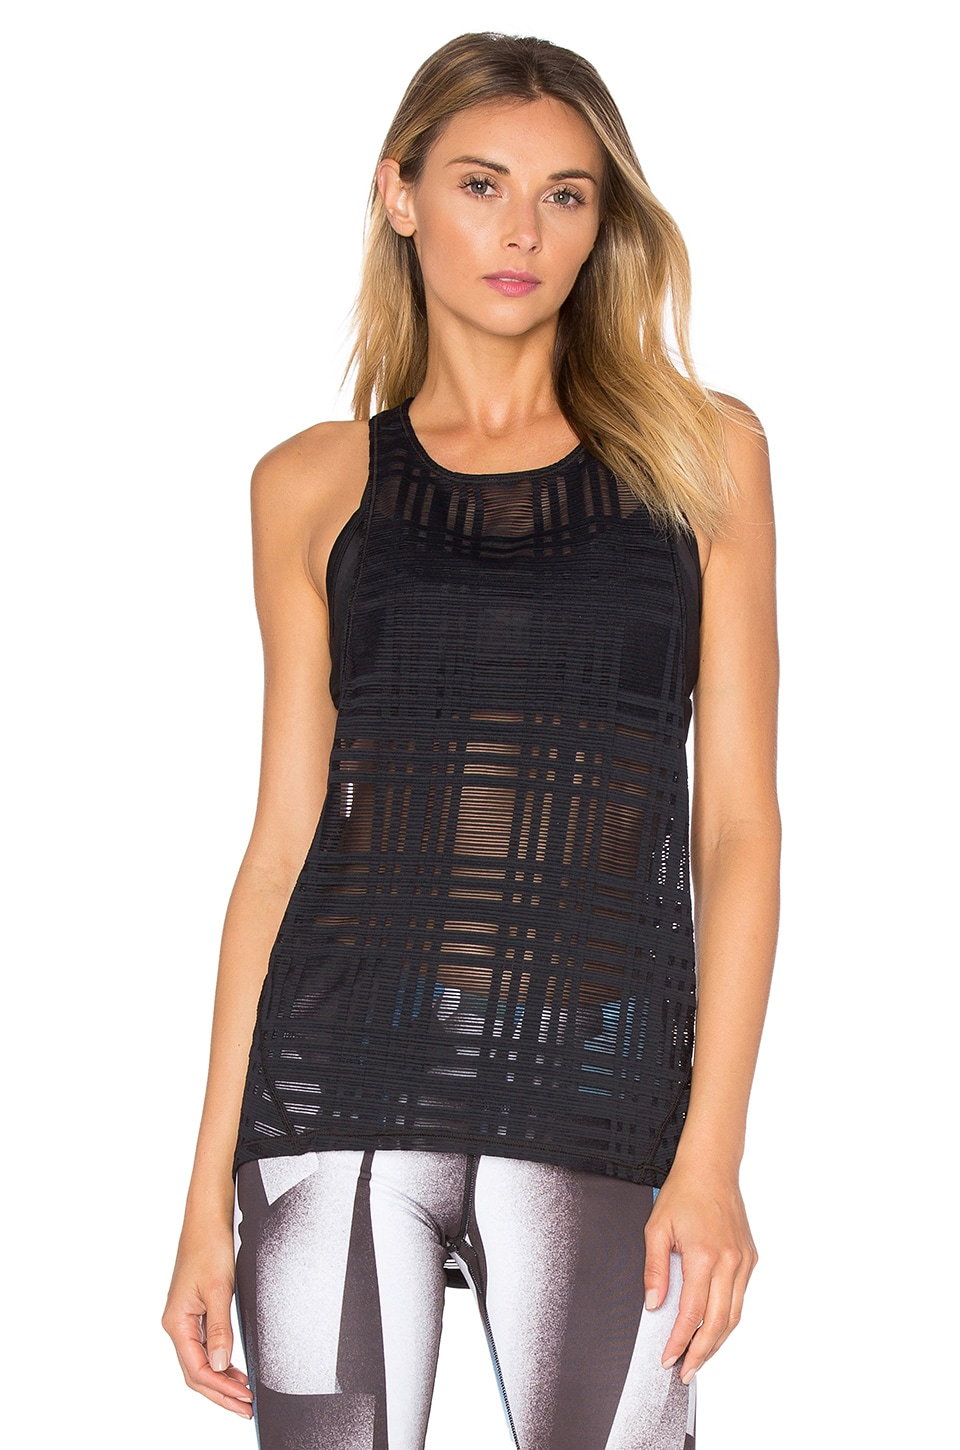 Plaid Dash Tank